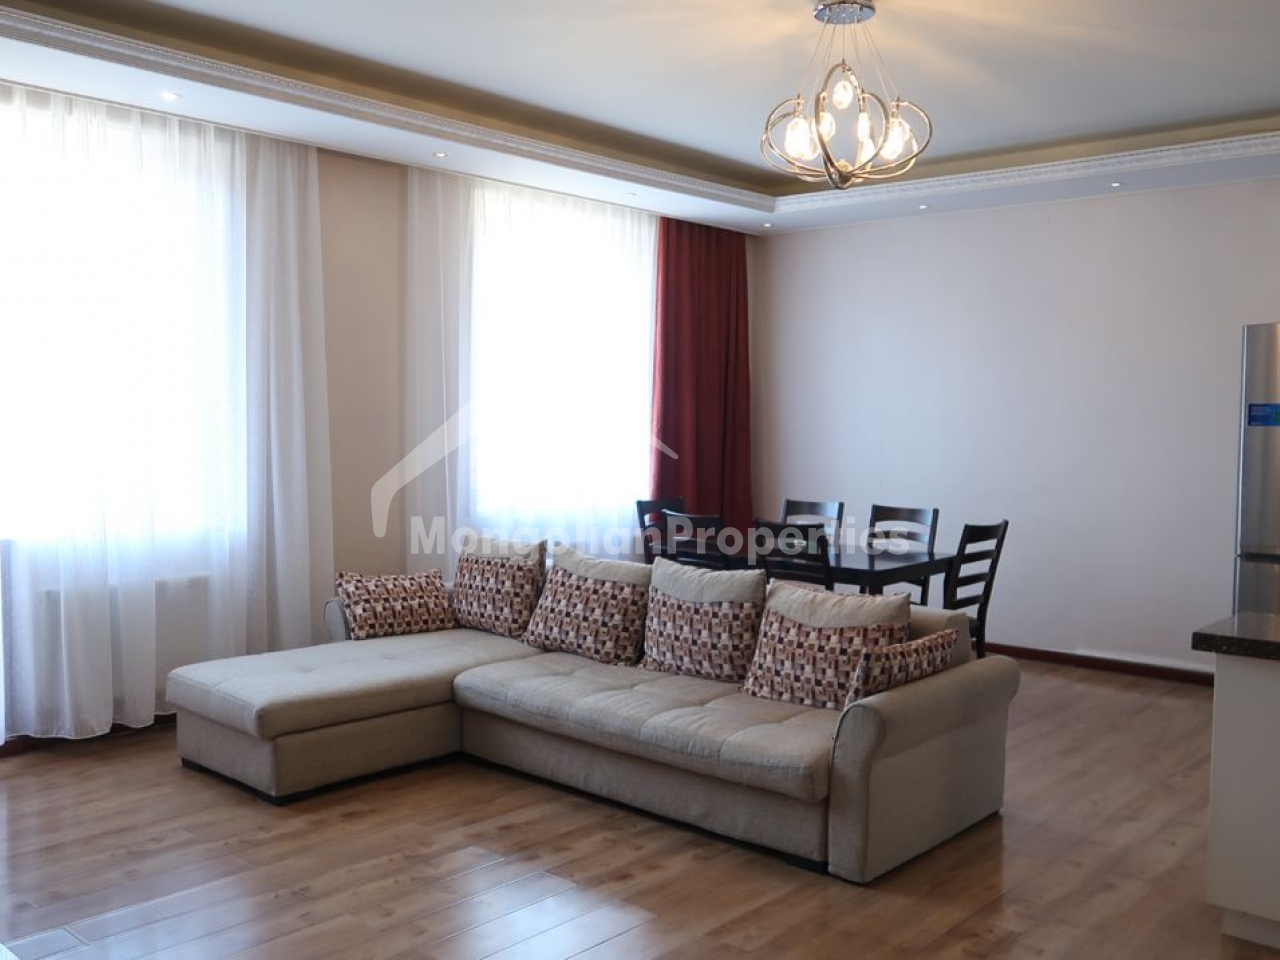 Clean Air! Cozy 3 bedroom apartment is for rent in Gerelt/Light complex.